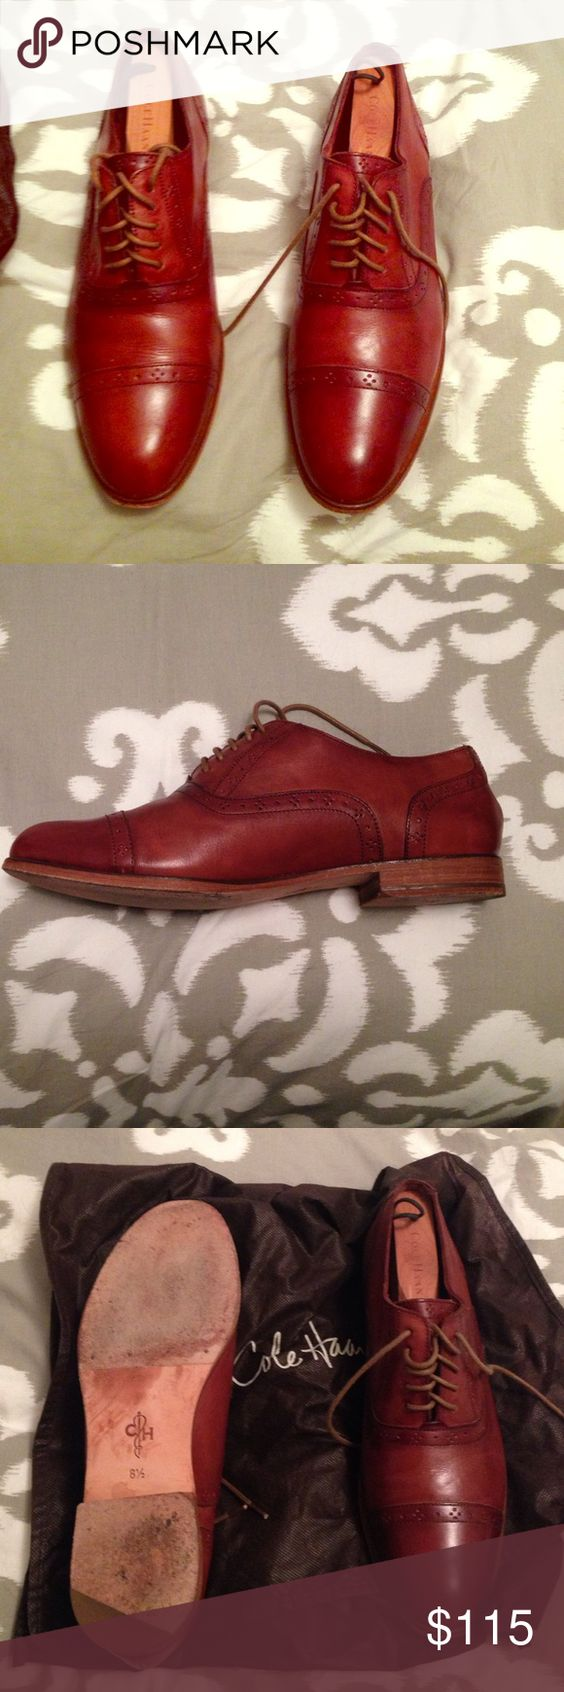 Cole Hann Women's Oxford Leather Shoes Barely been worn lace up Oxford shoes in brown leather. Very elegant for work. Comfortable. Cole Haan Shoes Flats & Loafers